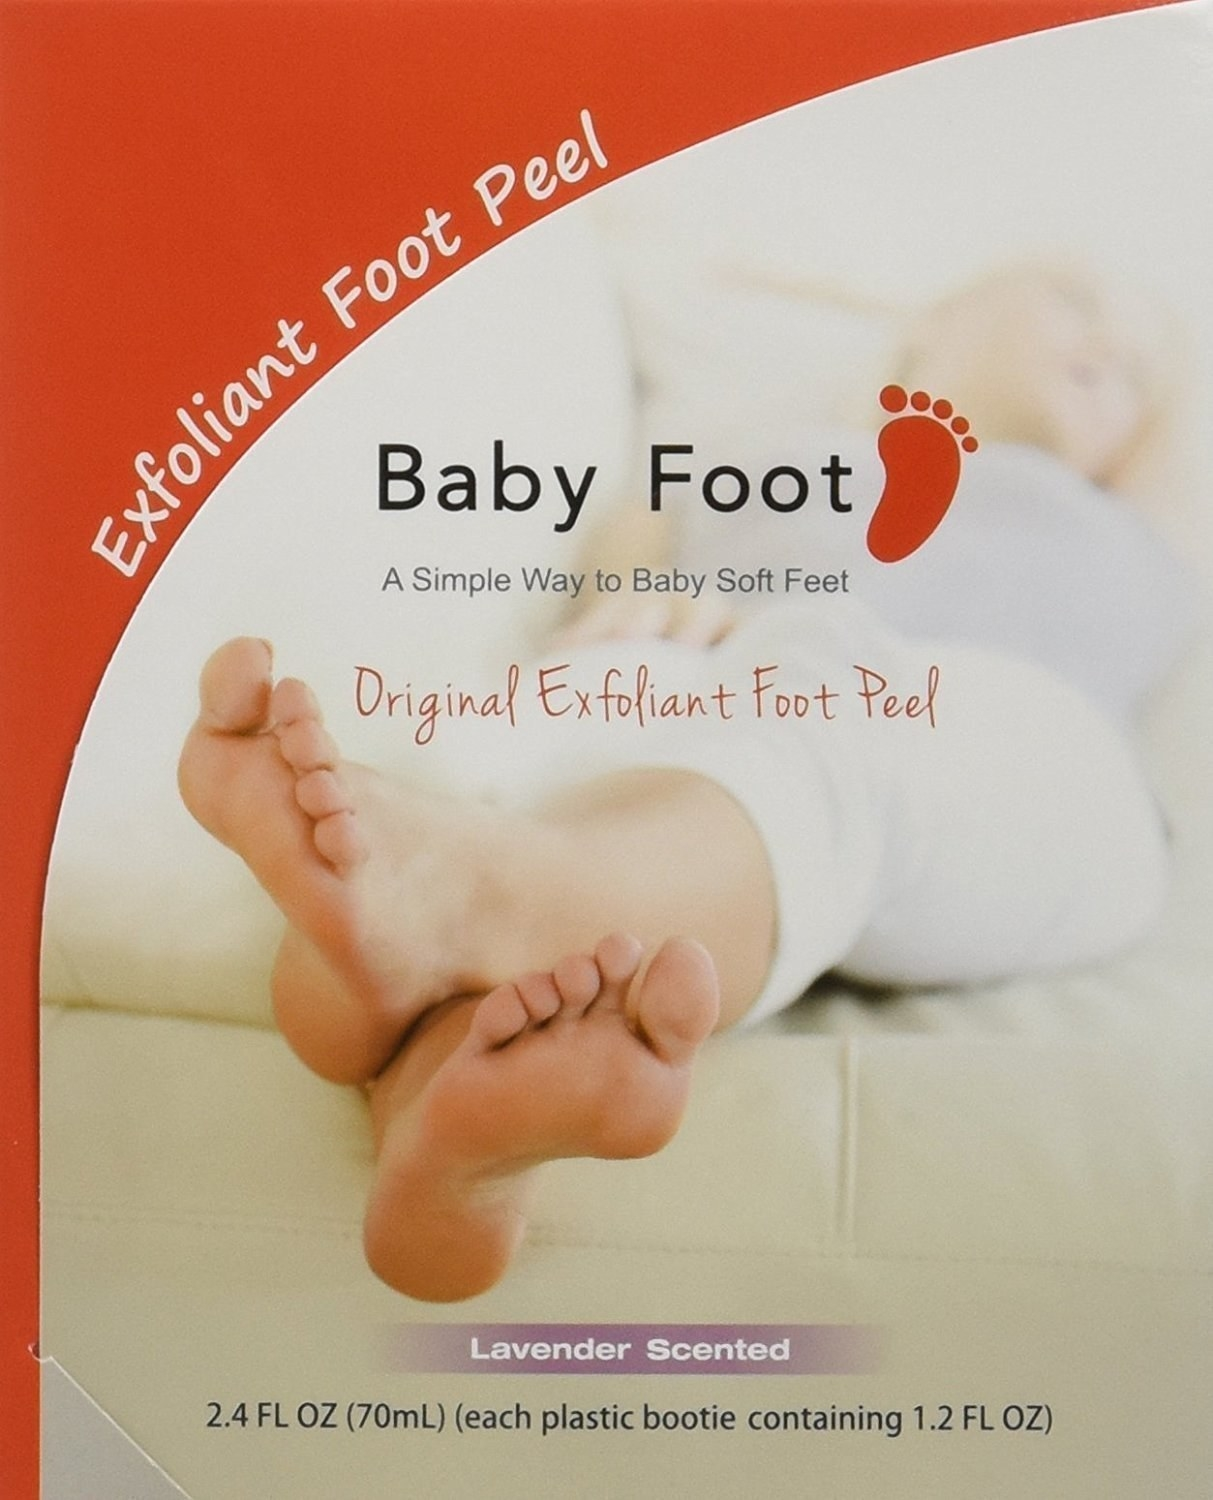 This Exfoliating Foot Peel Is The